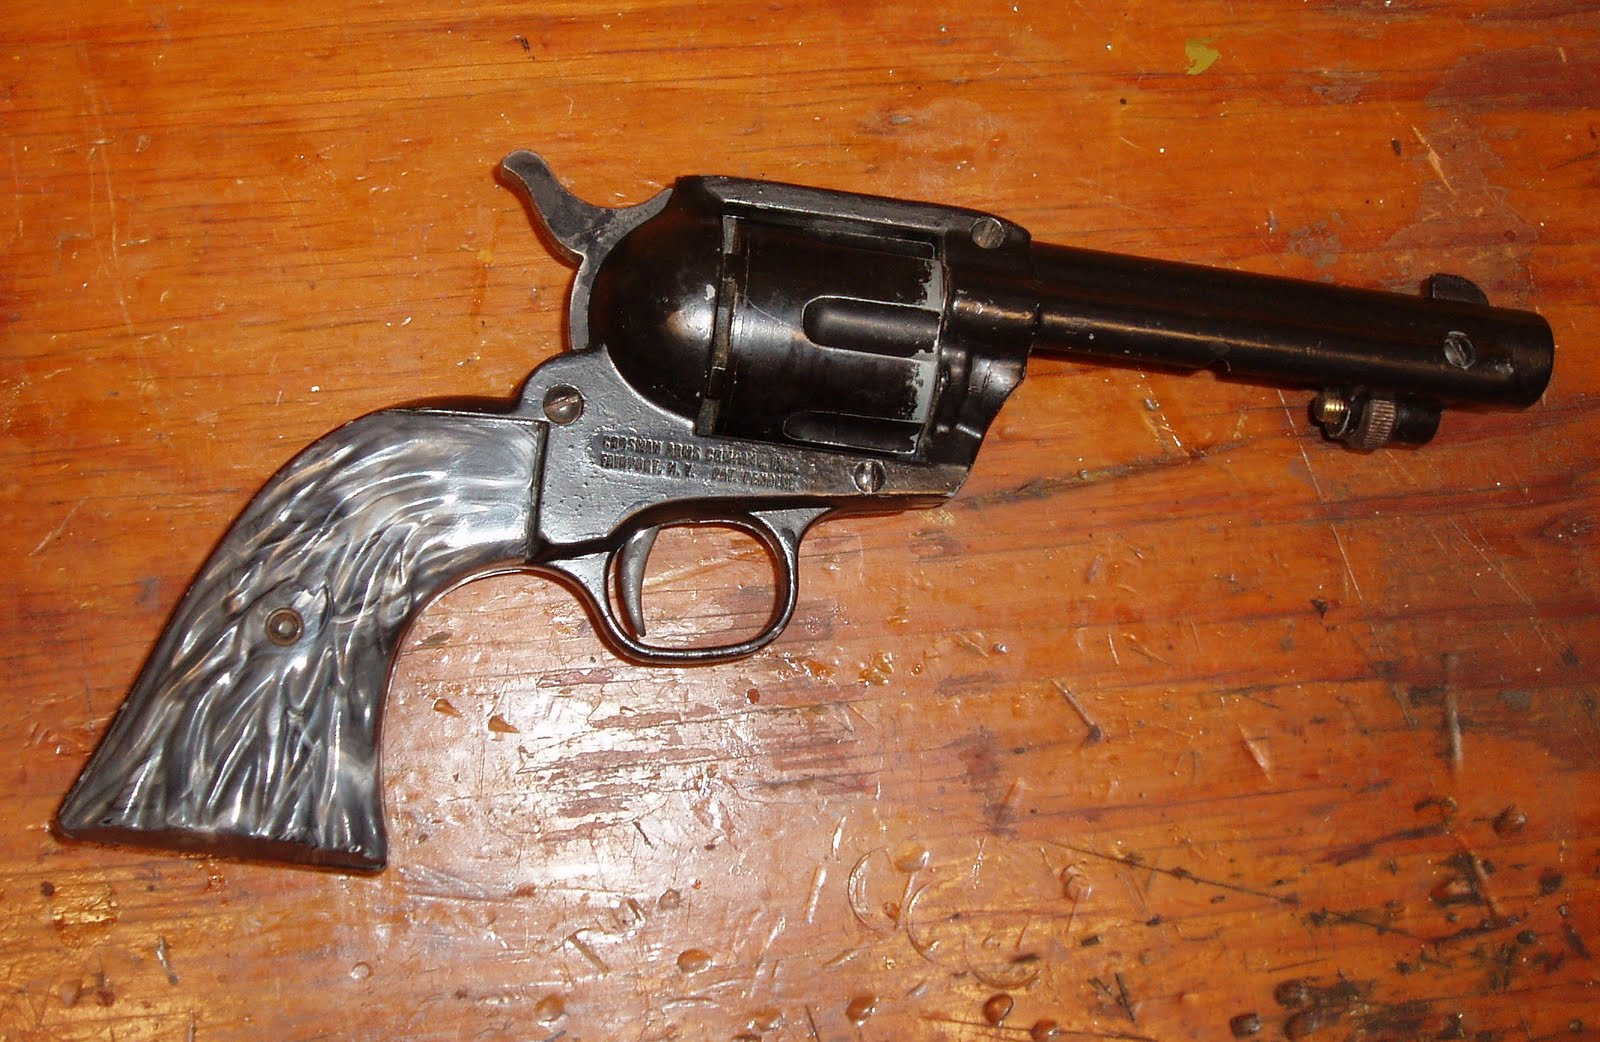 crosman 38t repair manual  must have if own repair 38c revolvers  we work  out trending price by crunching data on product's sale price over last days!